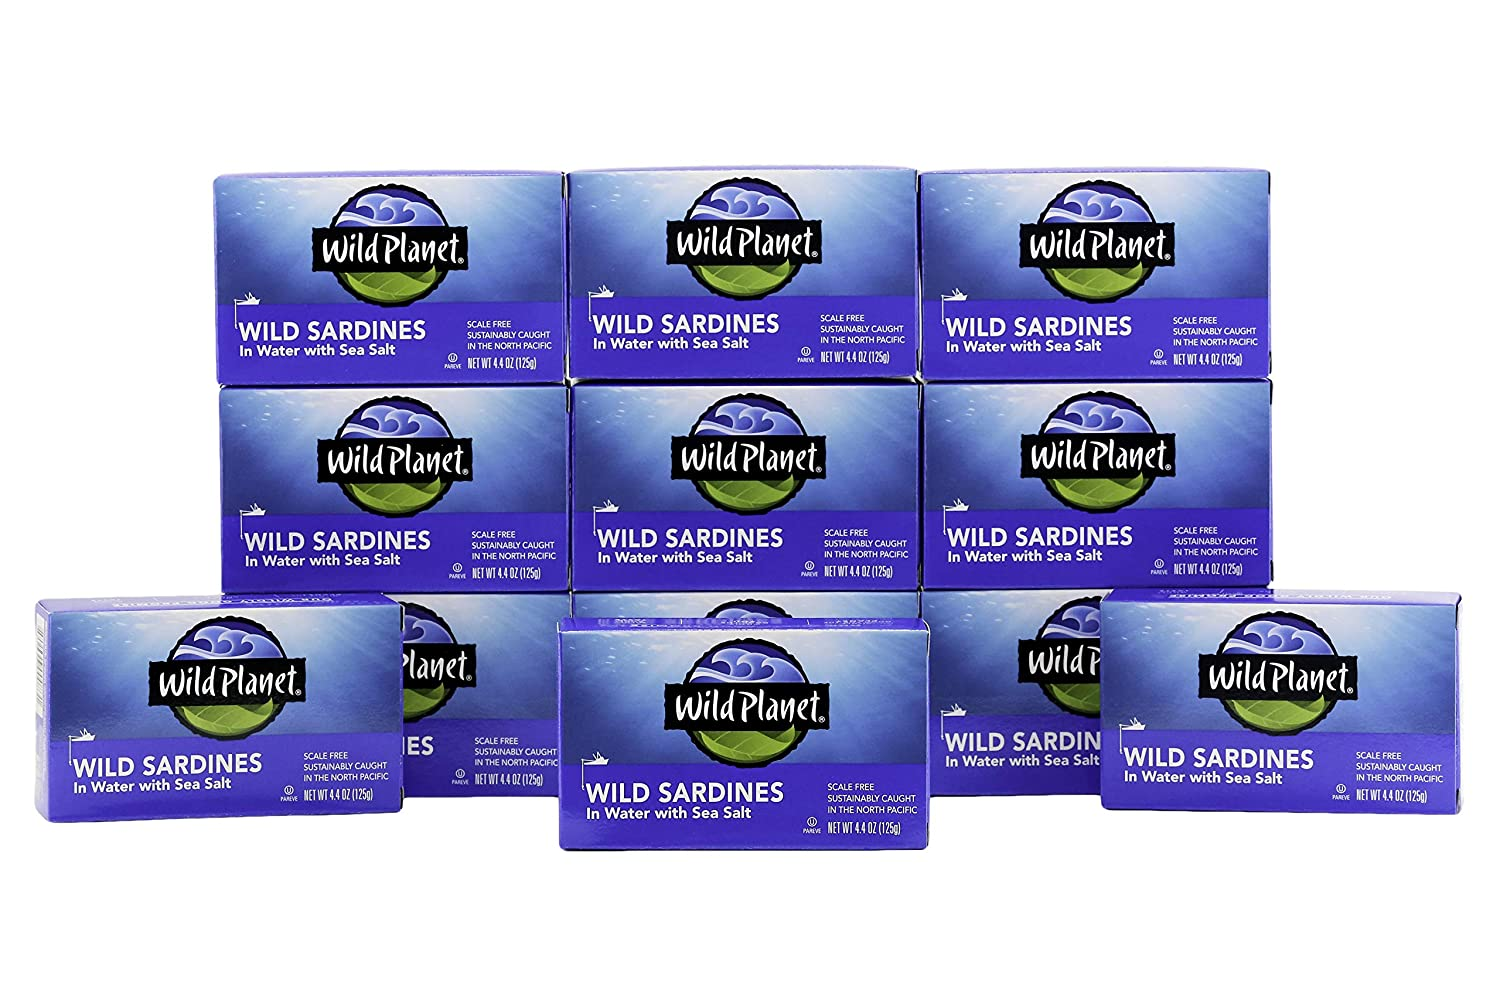 Wild Planet Wild Sardines in Water with Sea Salt, Keto and Paleo, 4.4 Ounce (Pack of 12)